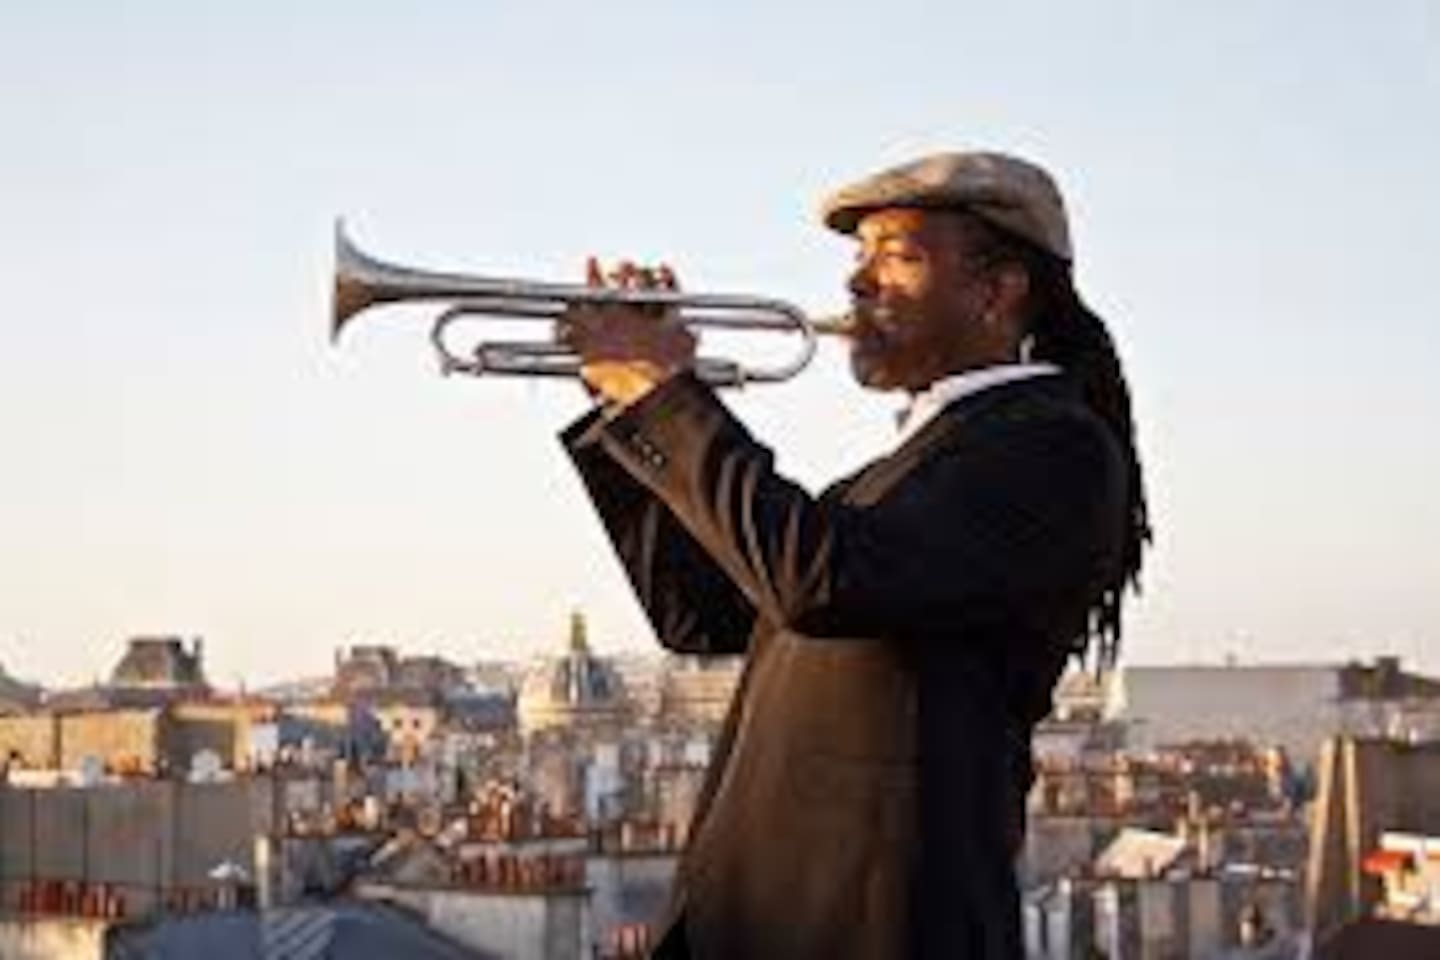 in memory of Miles Davis who played the trumpet on our roof and composed his jazz melodies